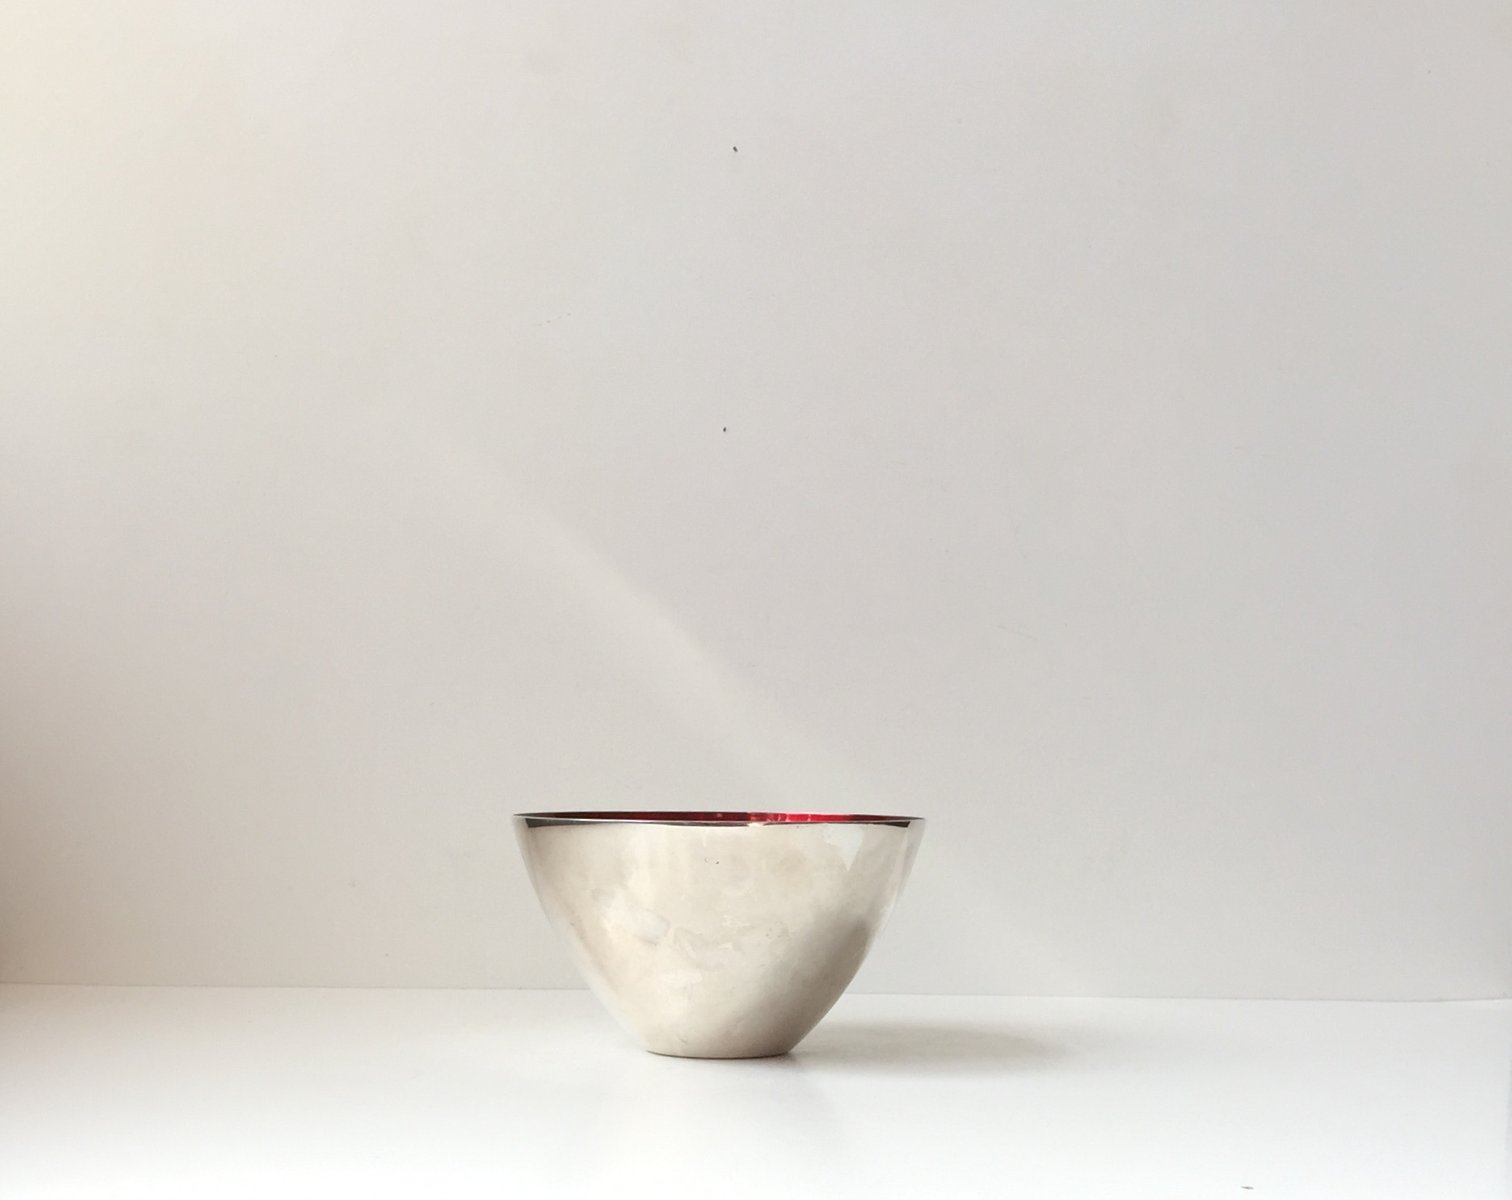 Modernist Conical Bowl In Silver Plate Enamel By Dgs 1950s For Sale At Pamono